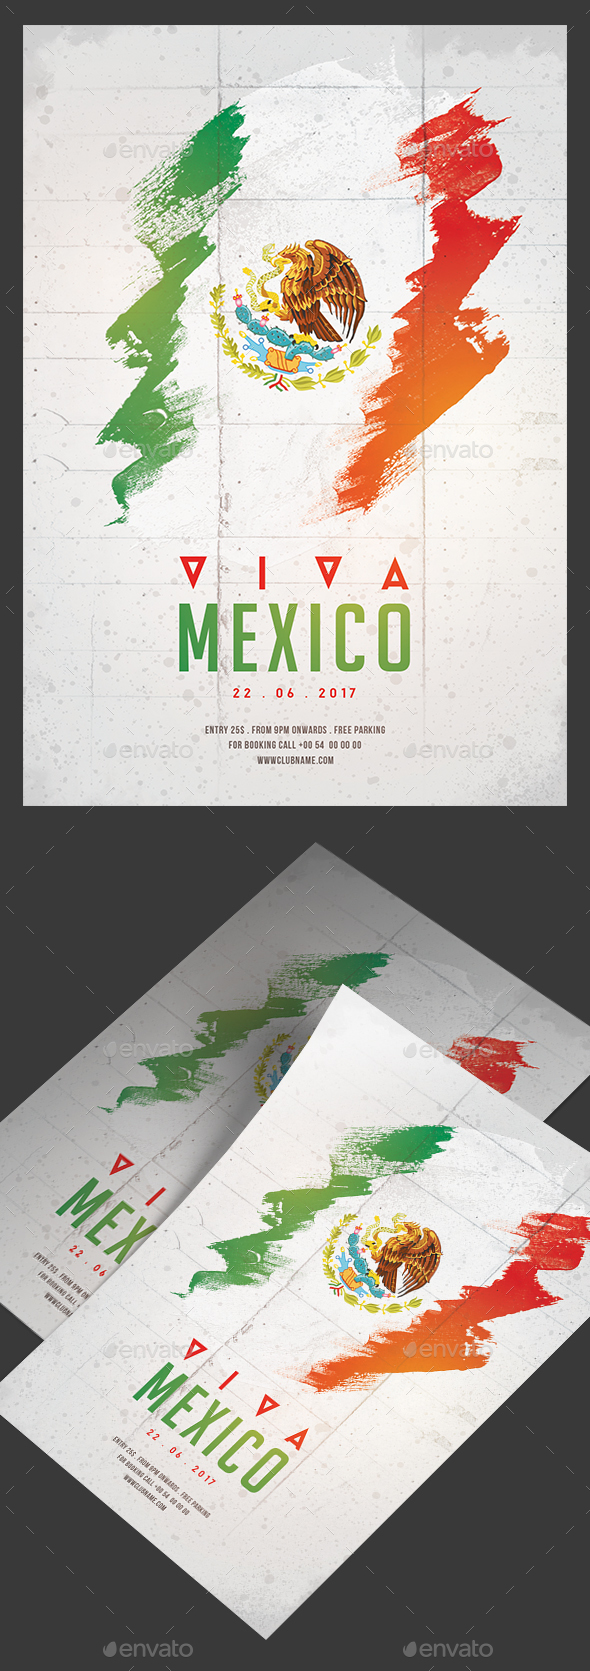 Viva Mexico Party Flyer - Clubs & Parties Events